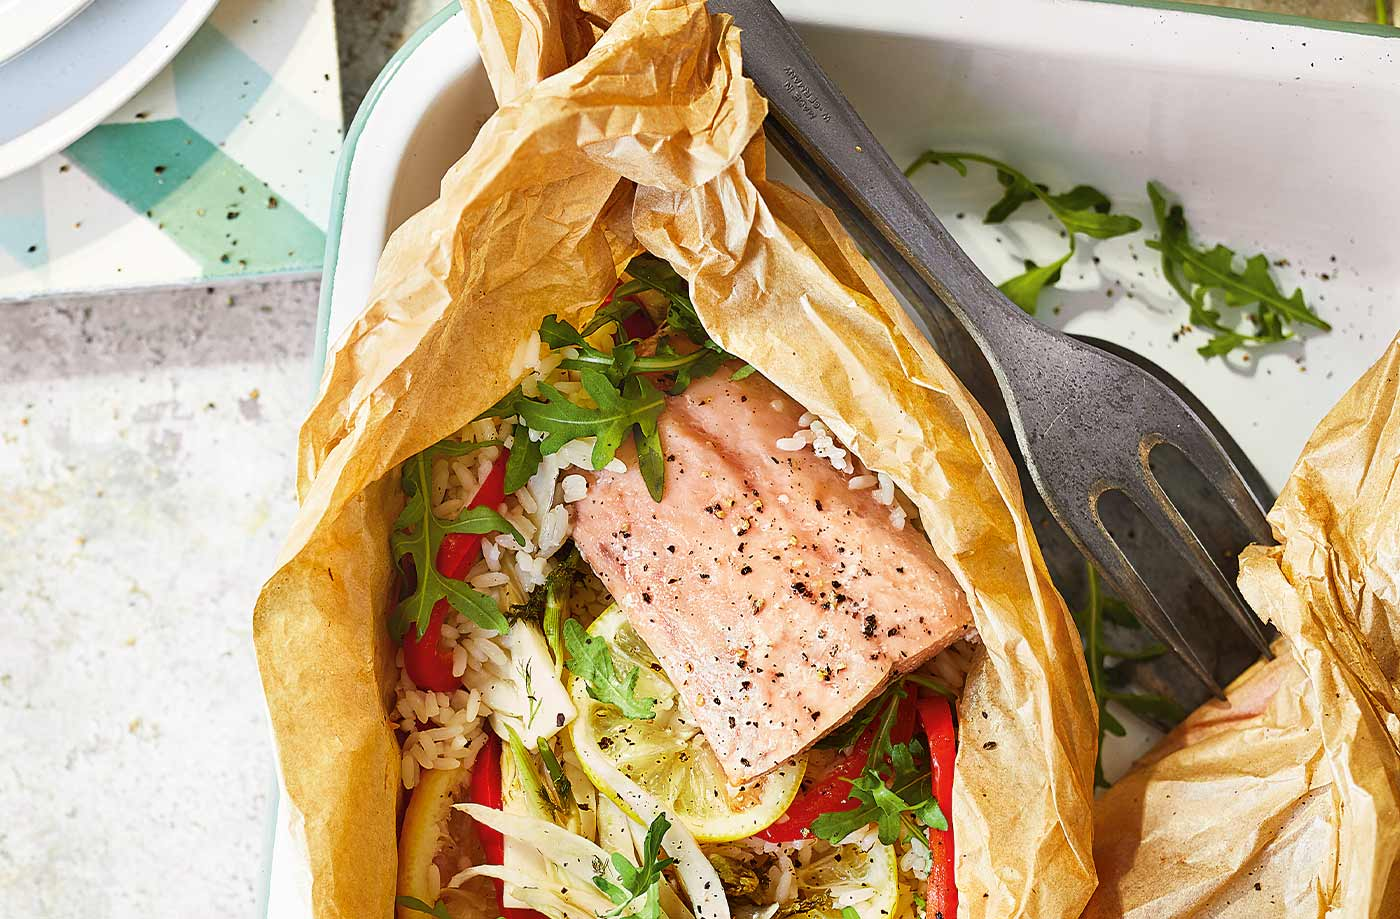 Salmon and rice parcels